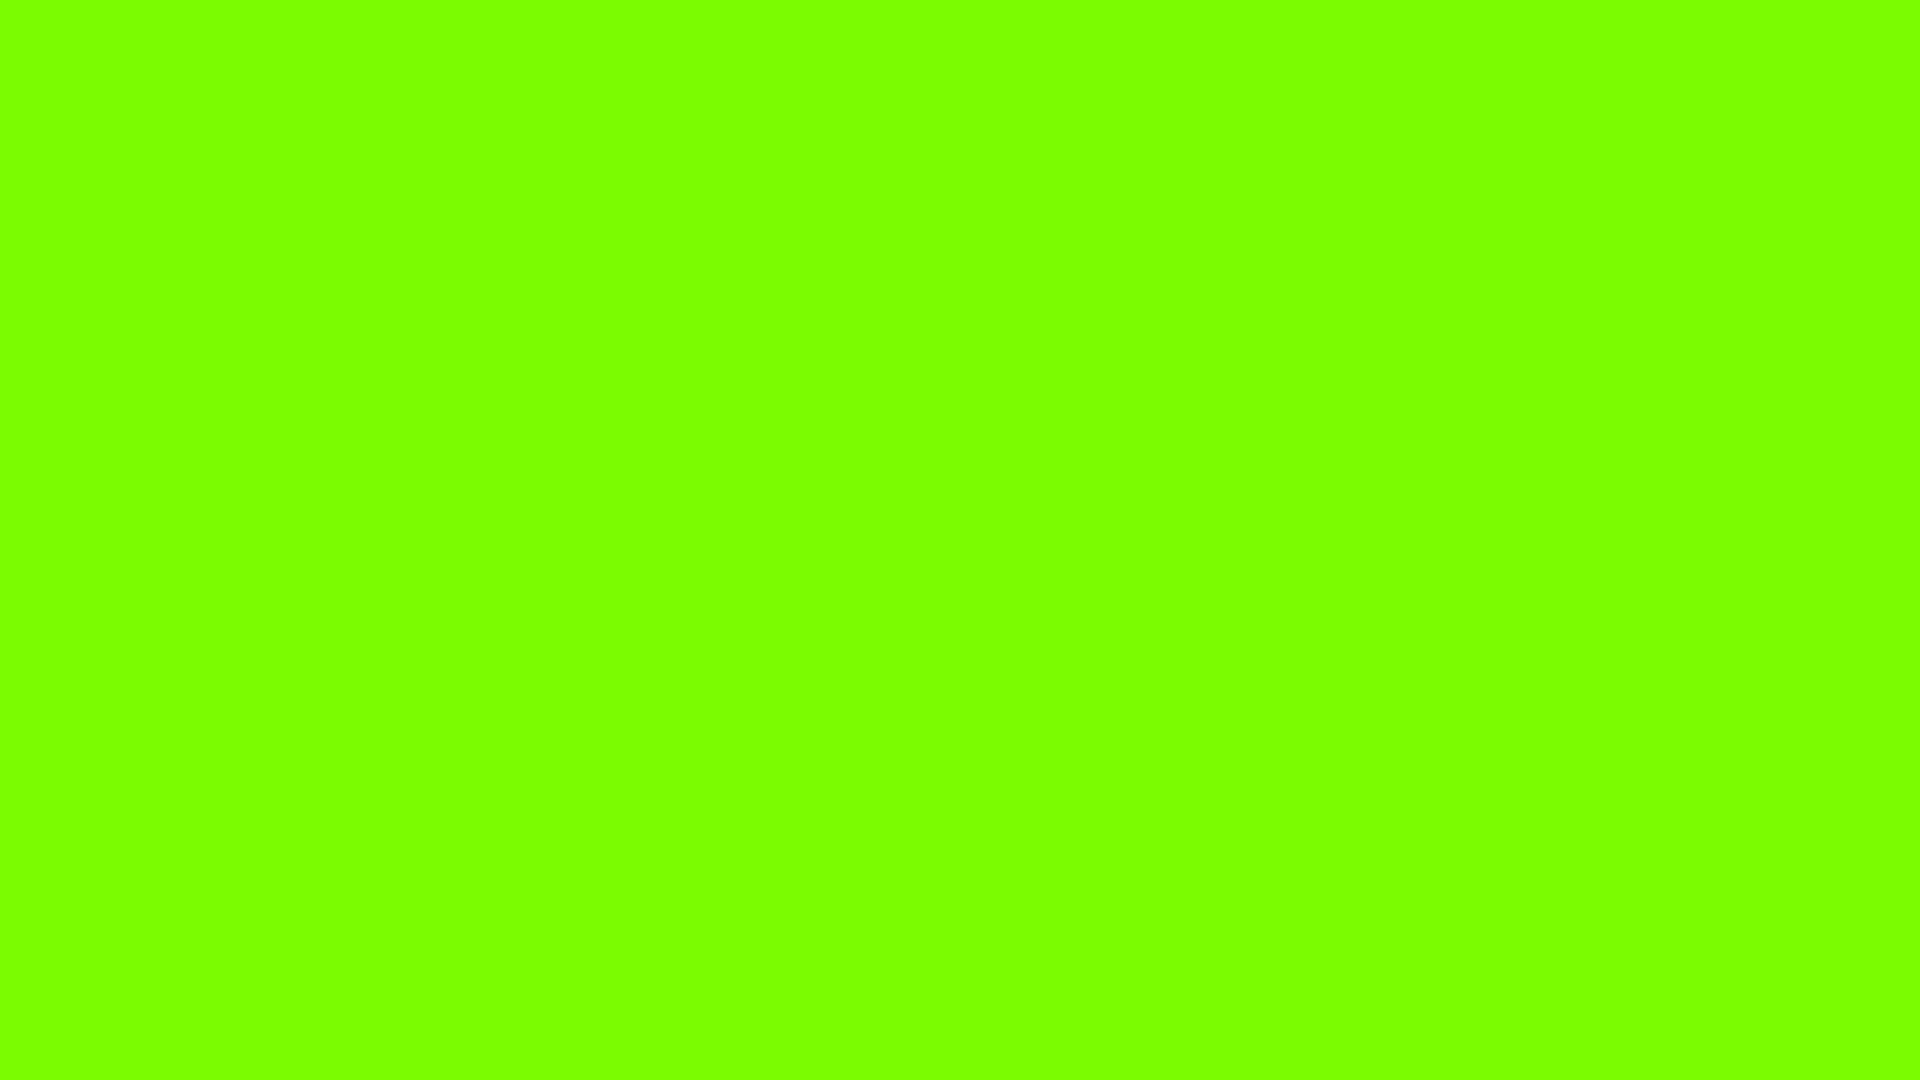 1920x1080 lawn green solid color background